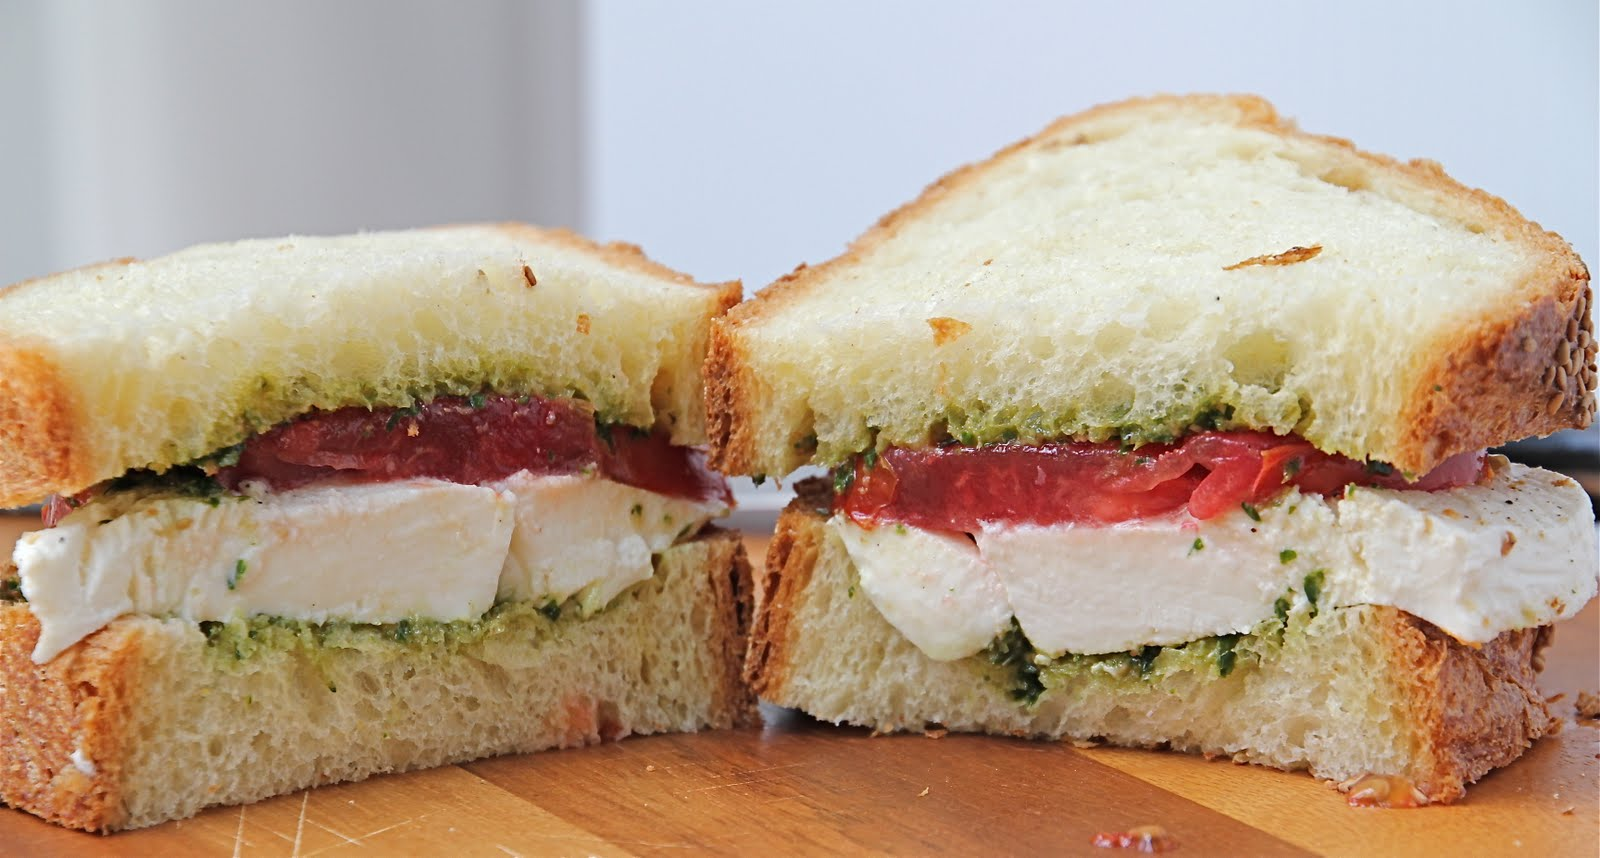 Farmer's Market Sandwich - Pesto, Mozzarella, and Tomato Sandwich ...